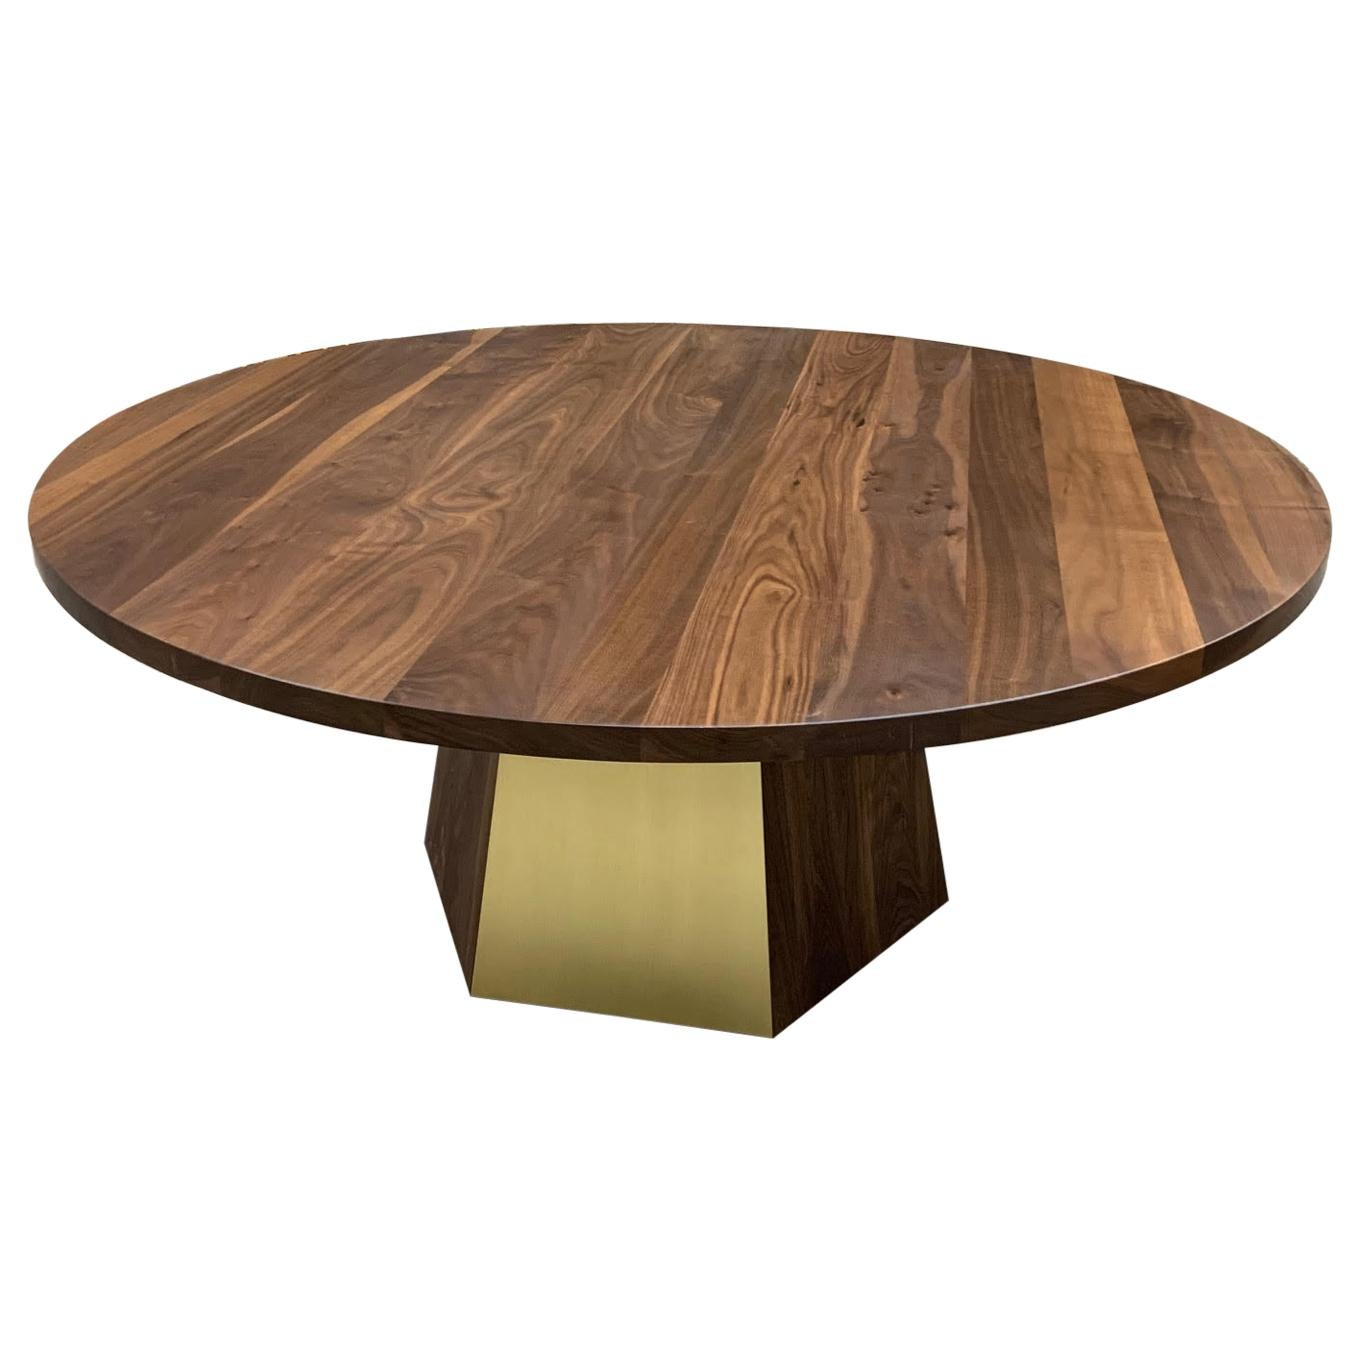 Round Black Walnut Dining with Hexagonal Base and Brass